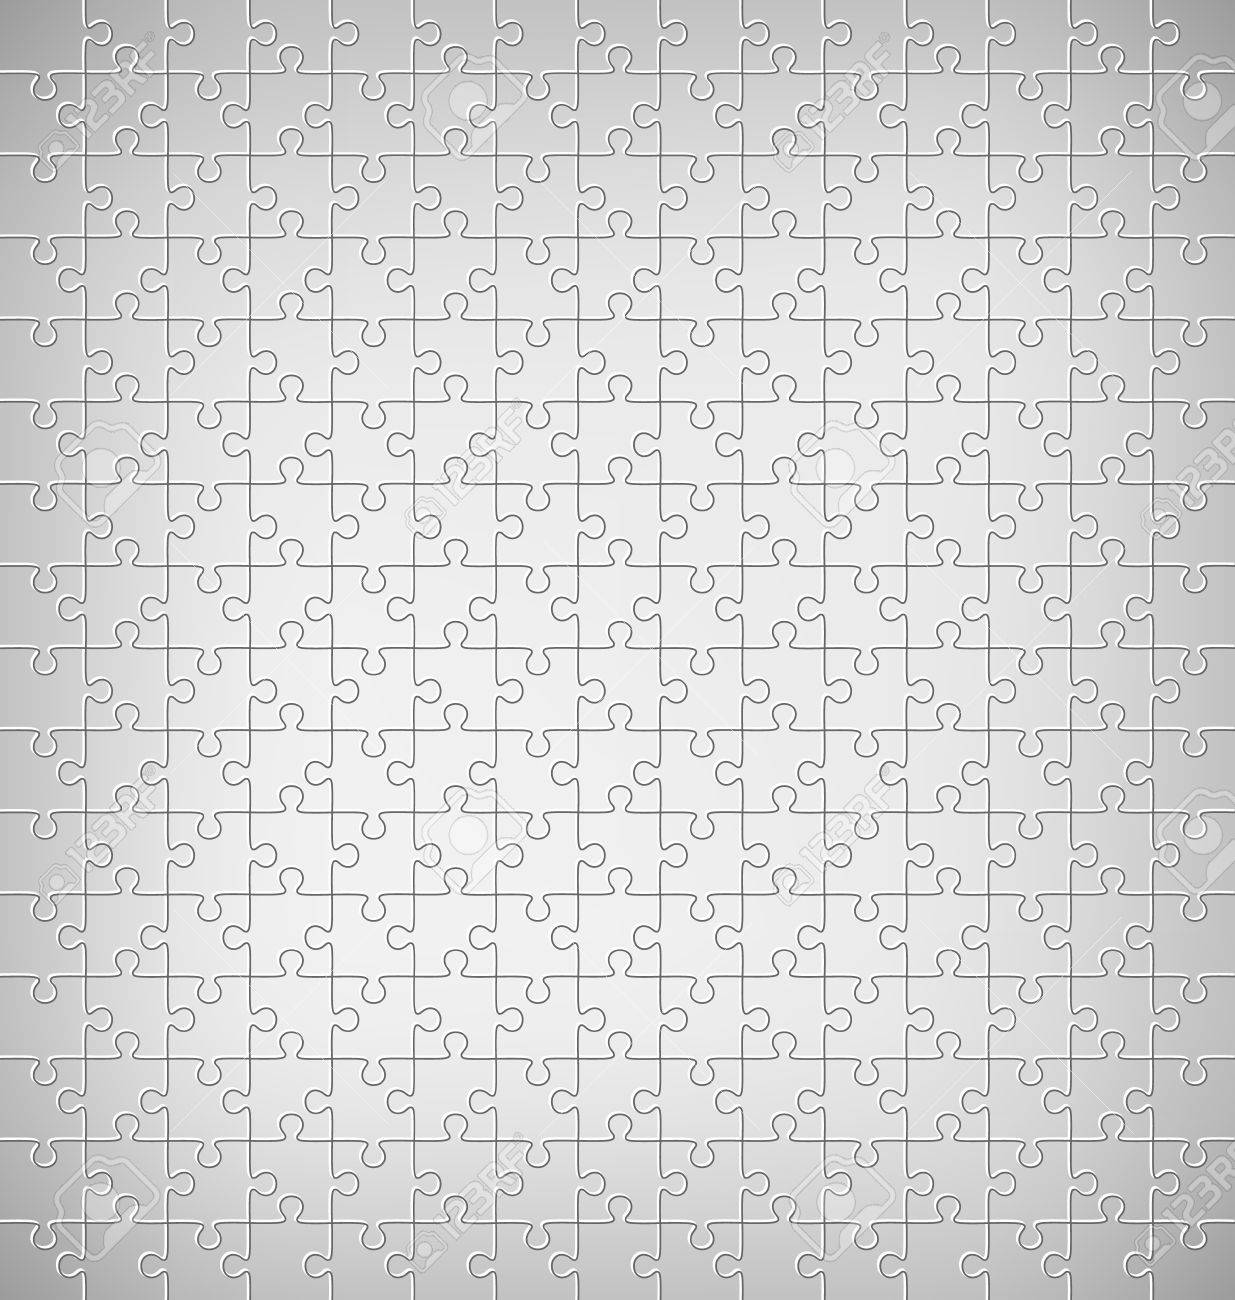 Background image grayscale - Jigsaw Puzzle Pattern On Grayscale Background Stock Vector 42529413